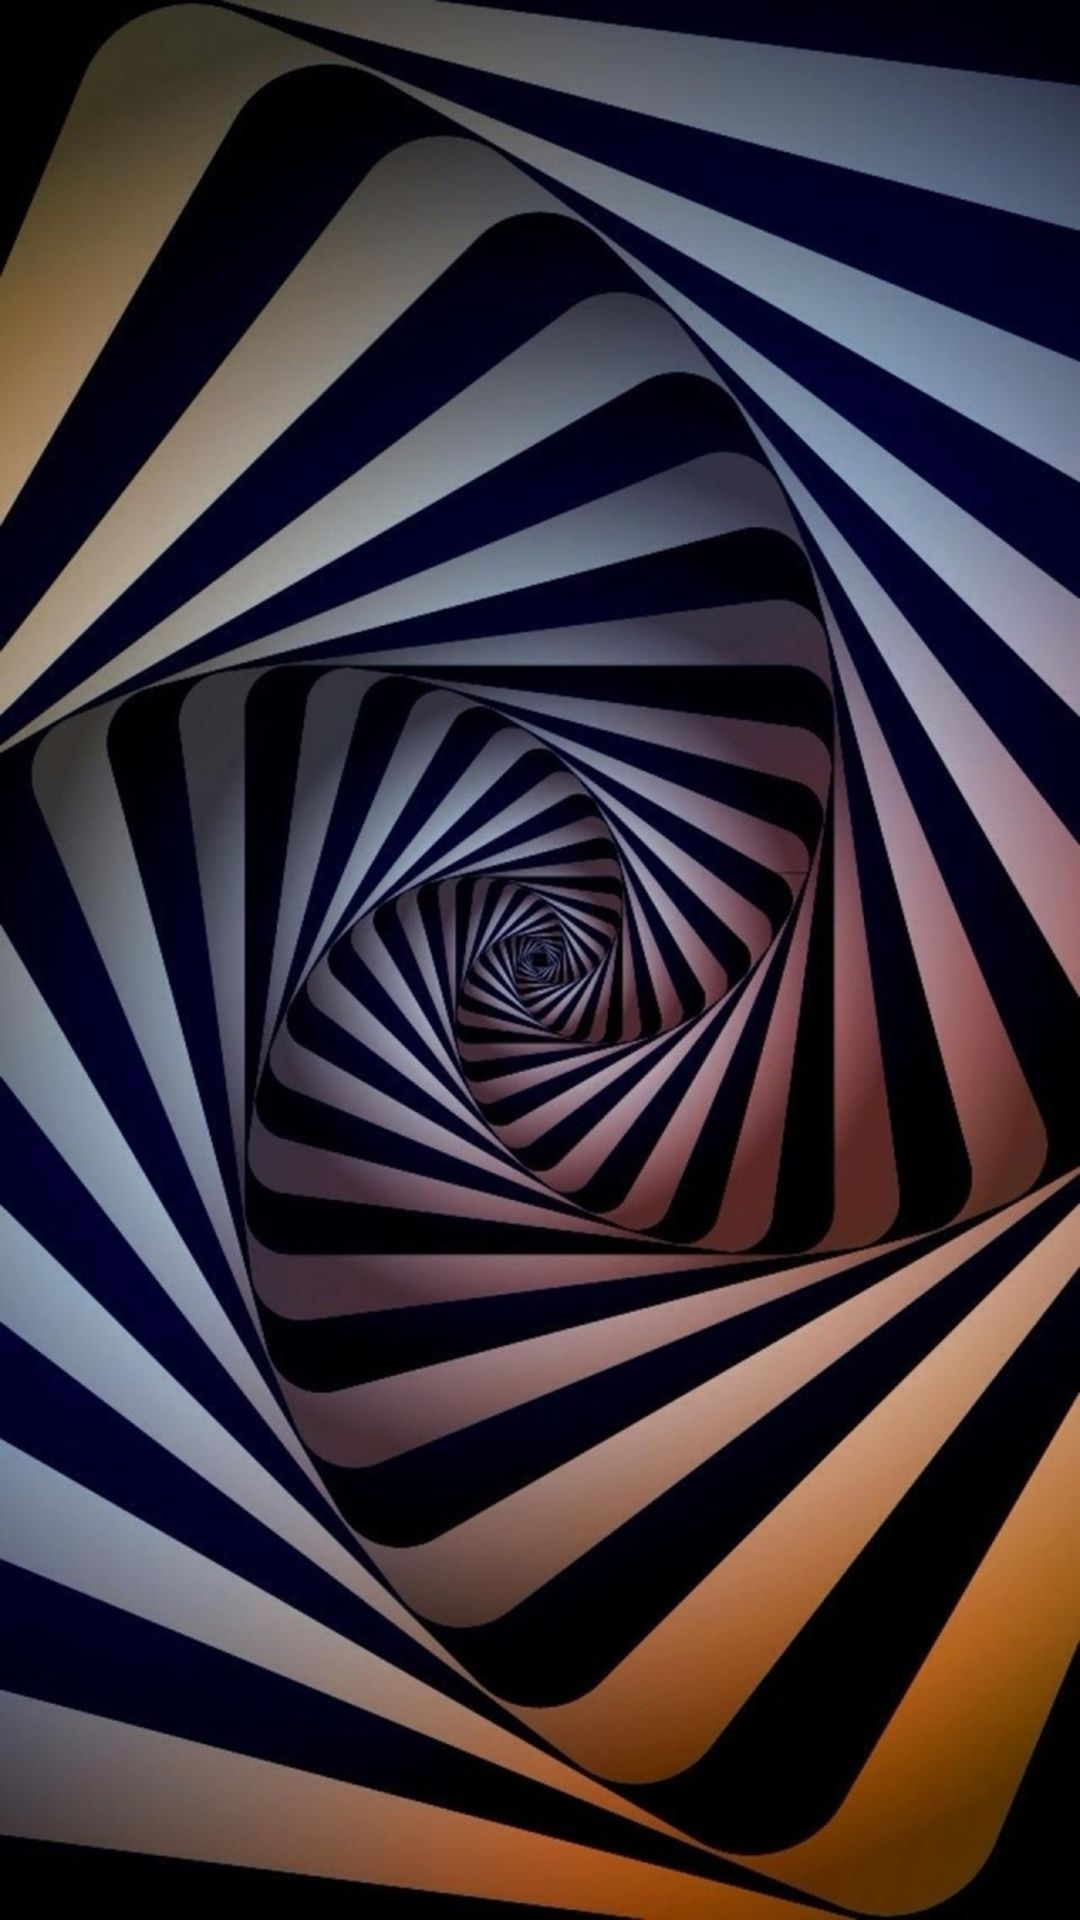 Abstract Swirl Dimensional 3d Iphone 6 Plus Wallpaper